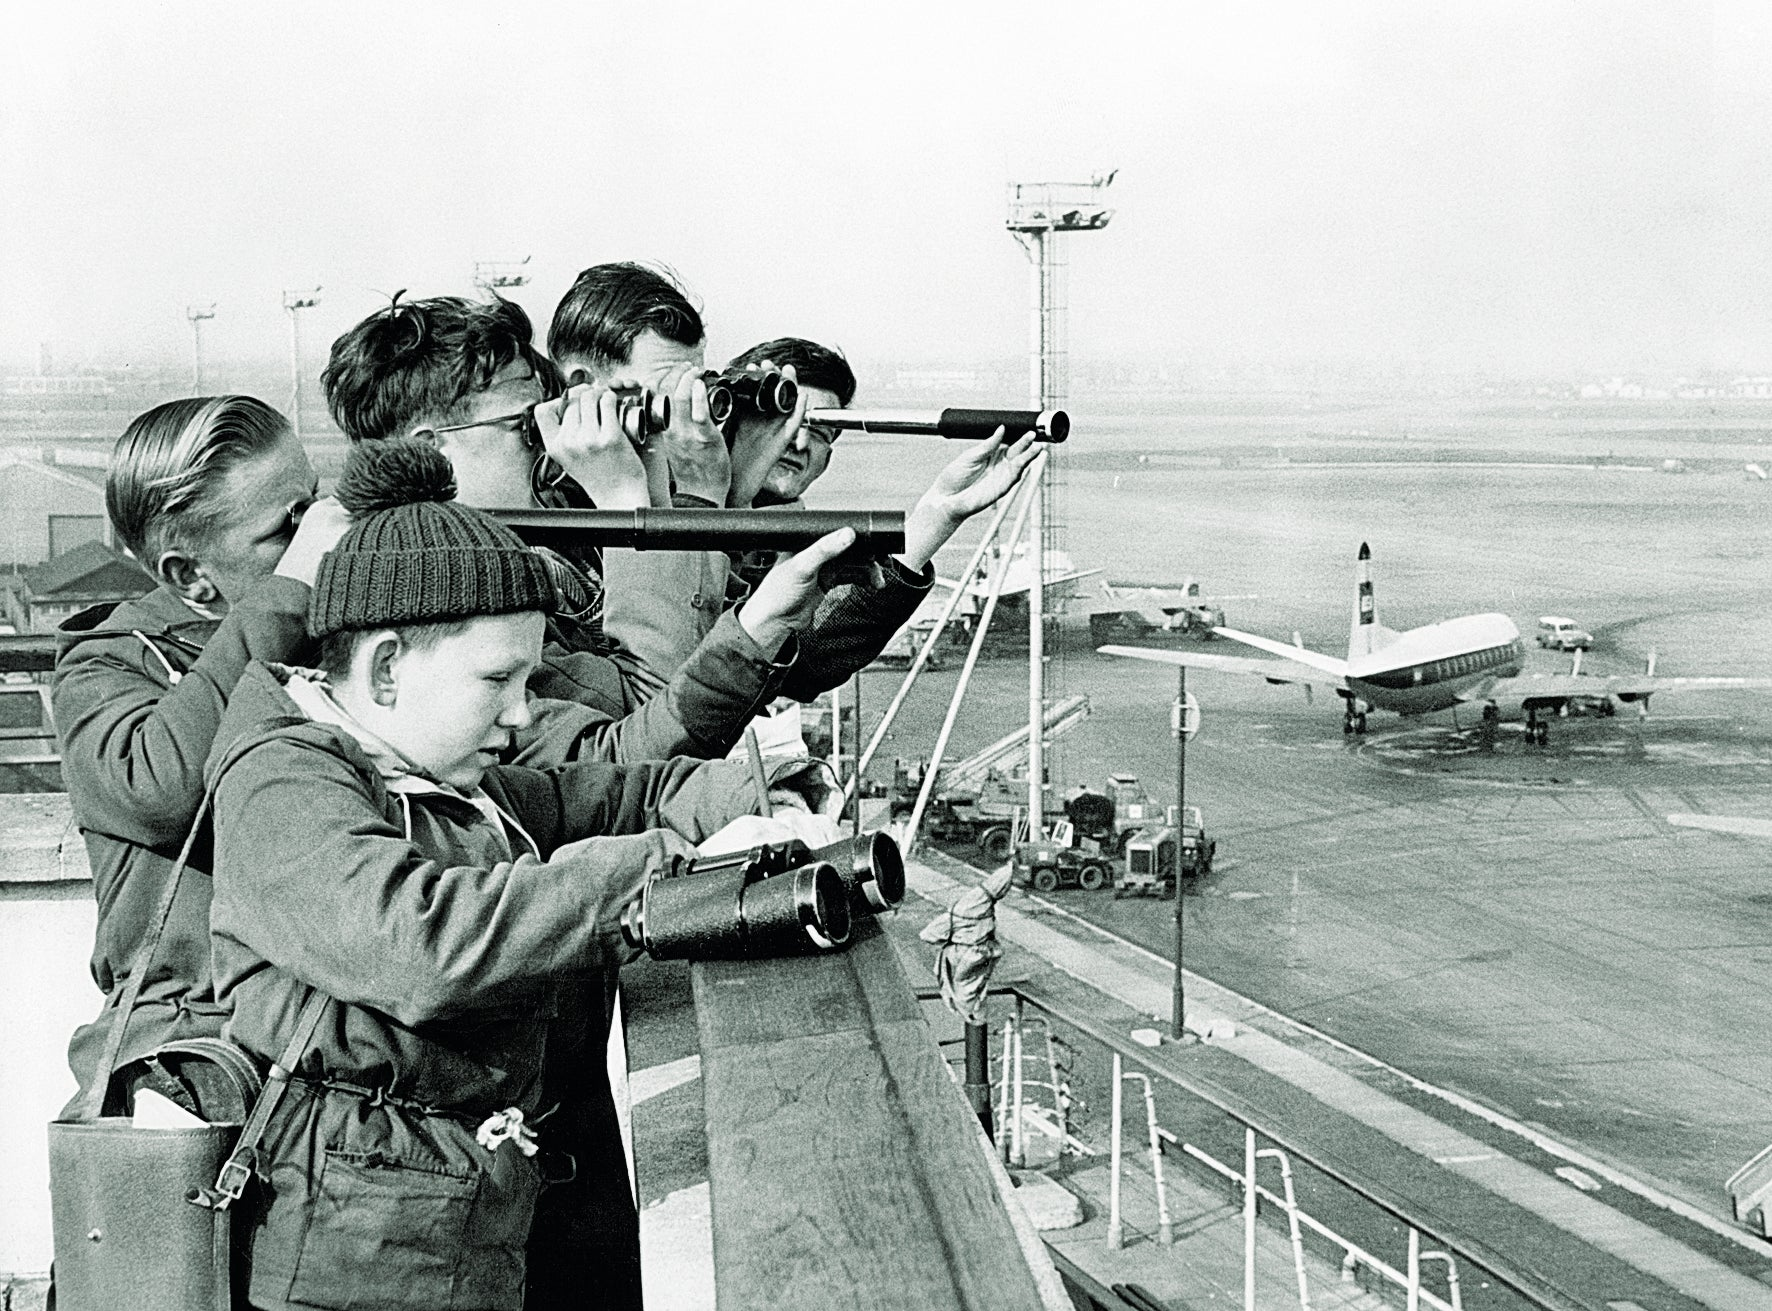 Plane spotting on Heathrow's viewing terraces in the 1960s